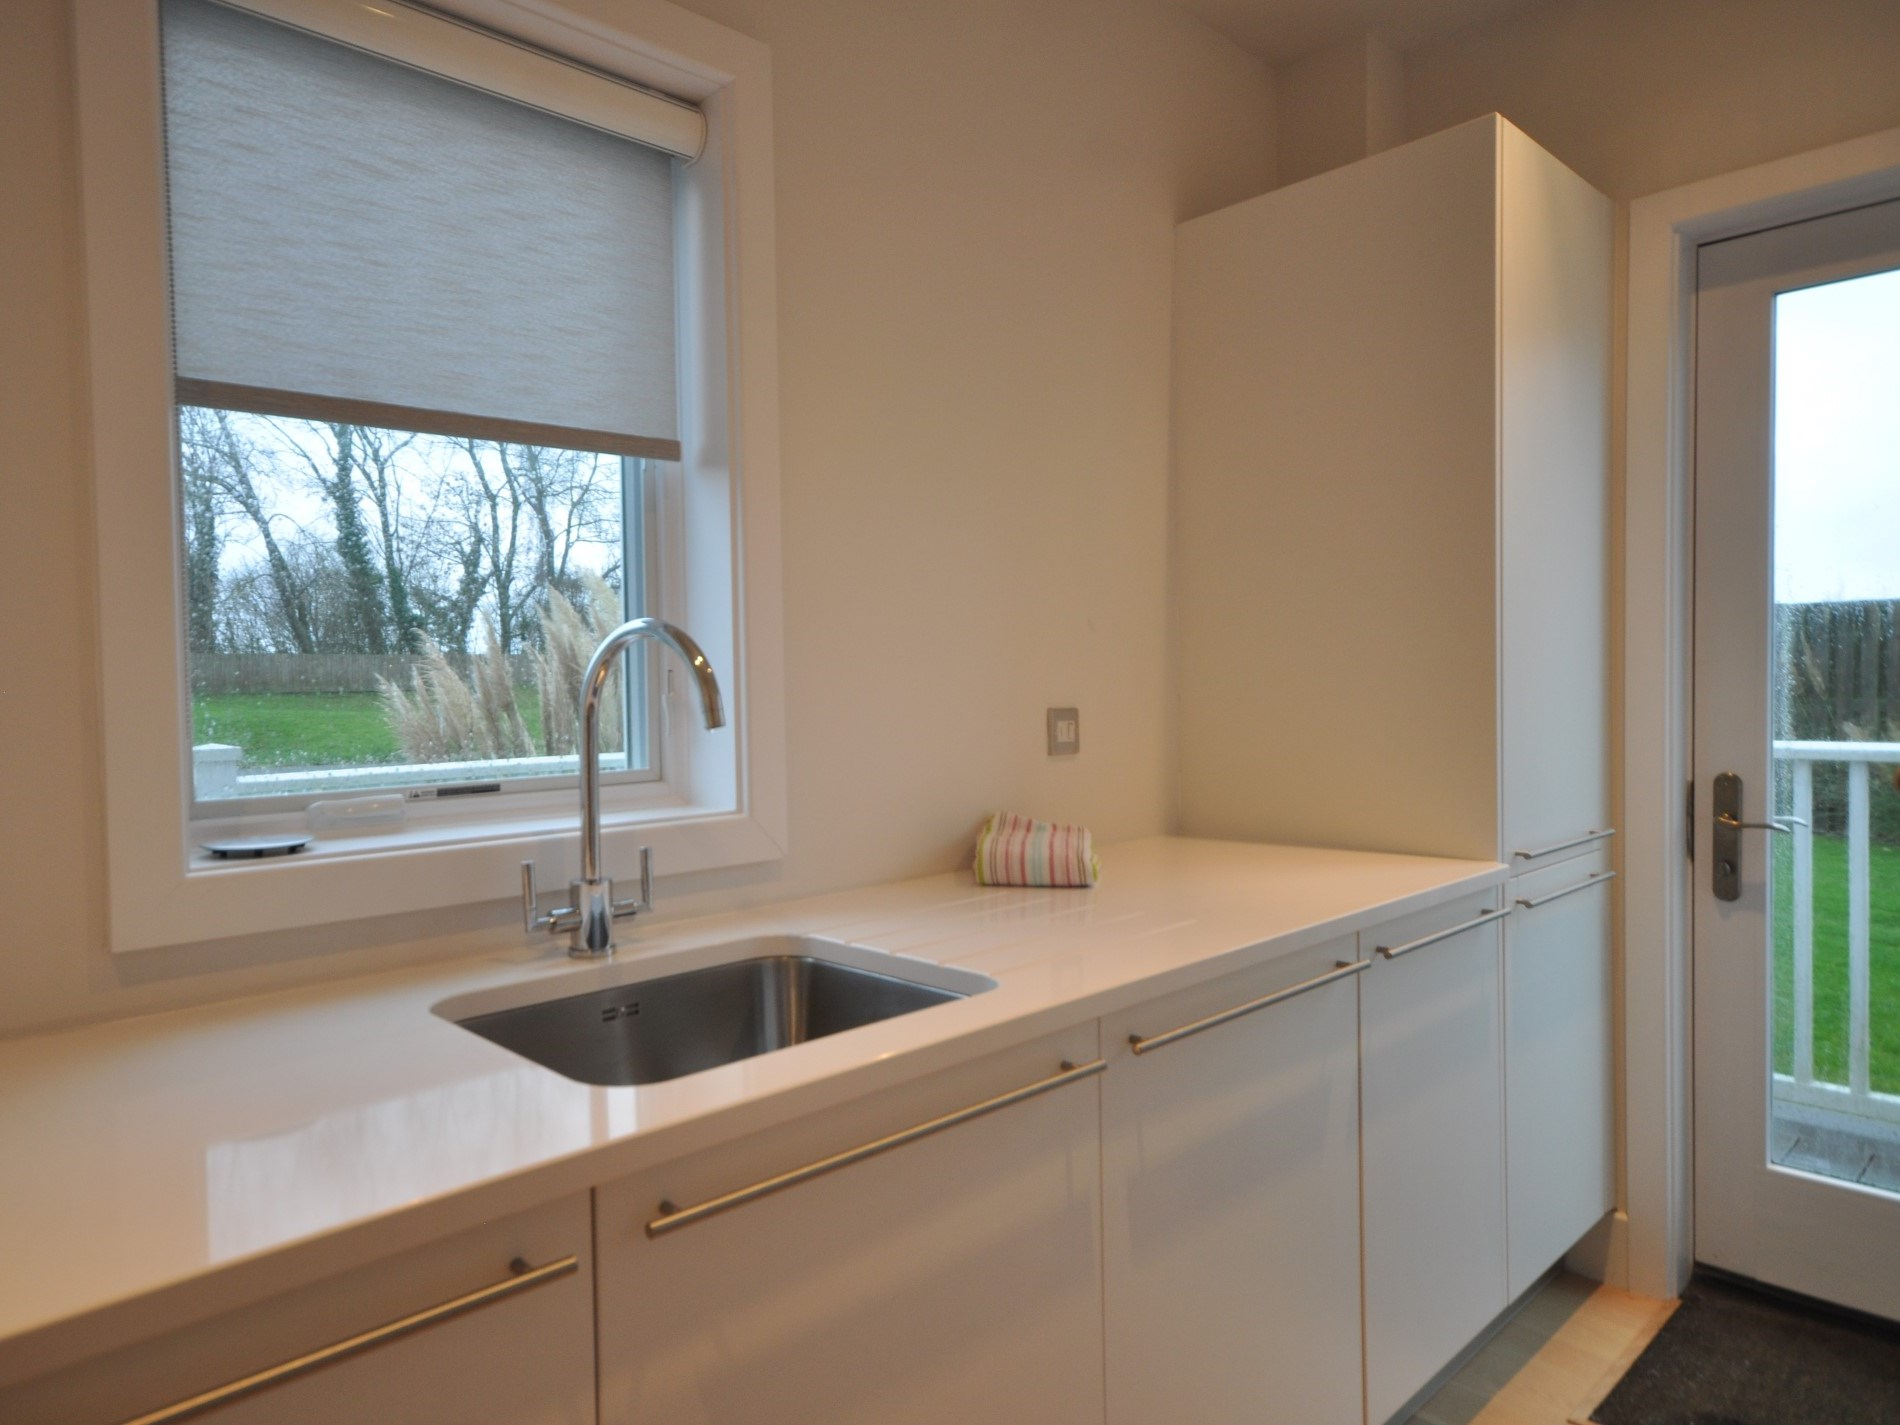 A utility room with additional storage and washing machine